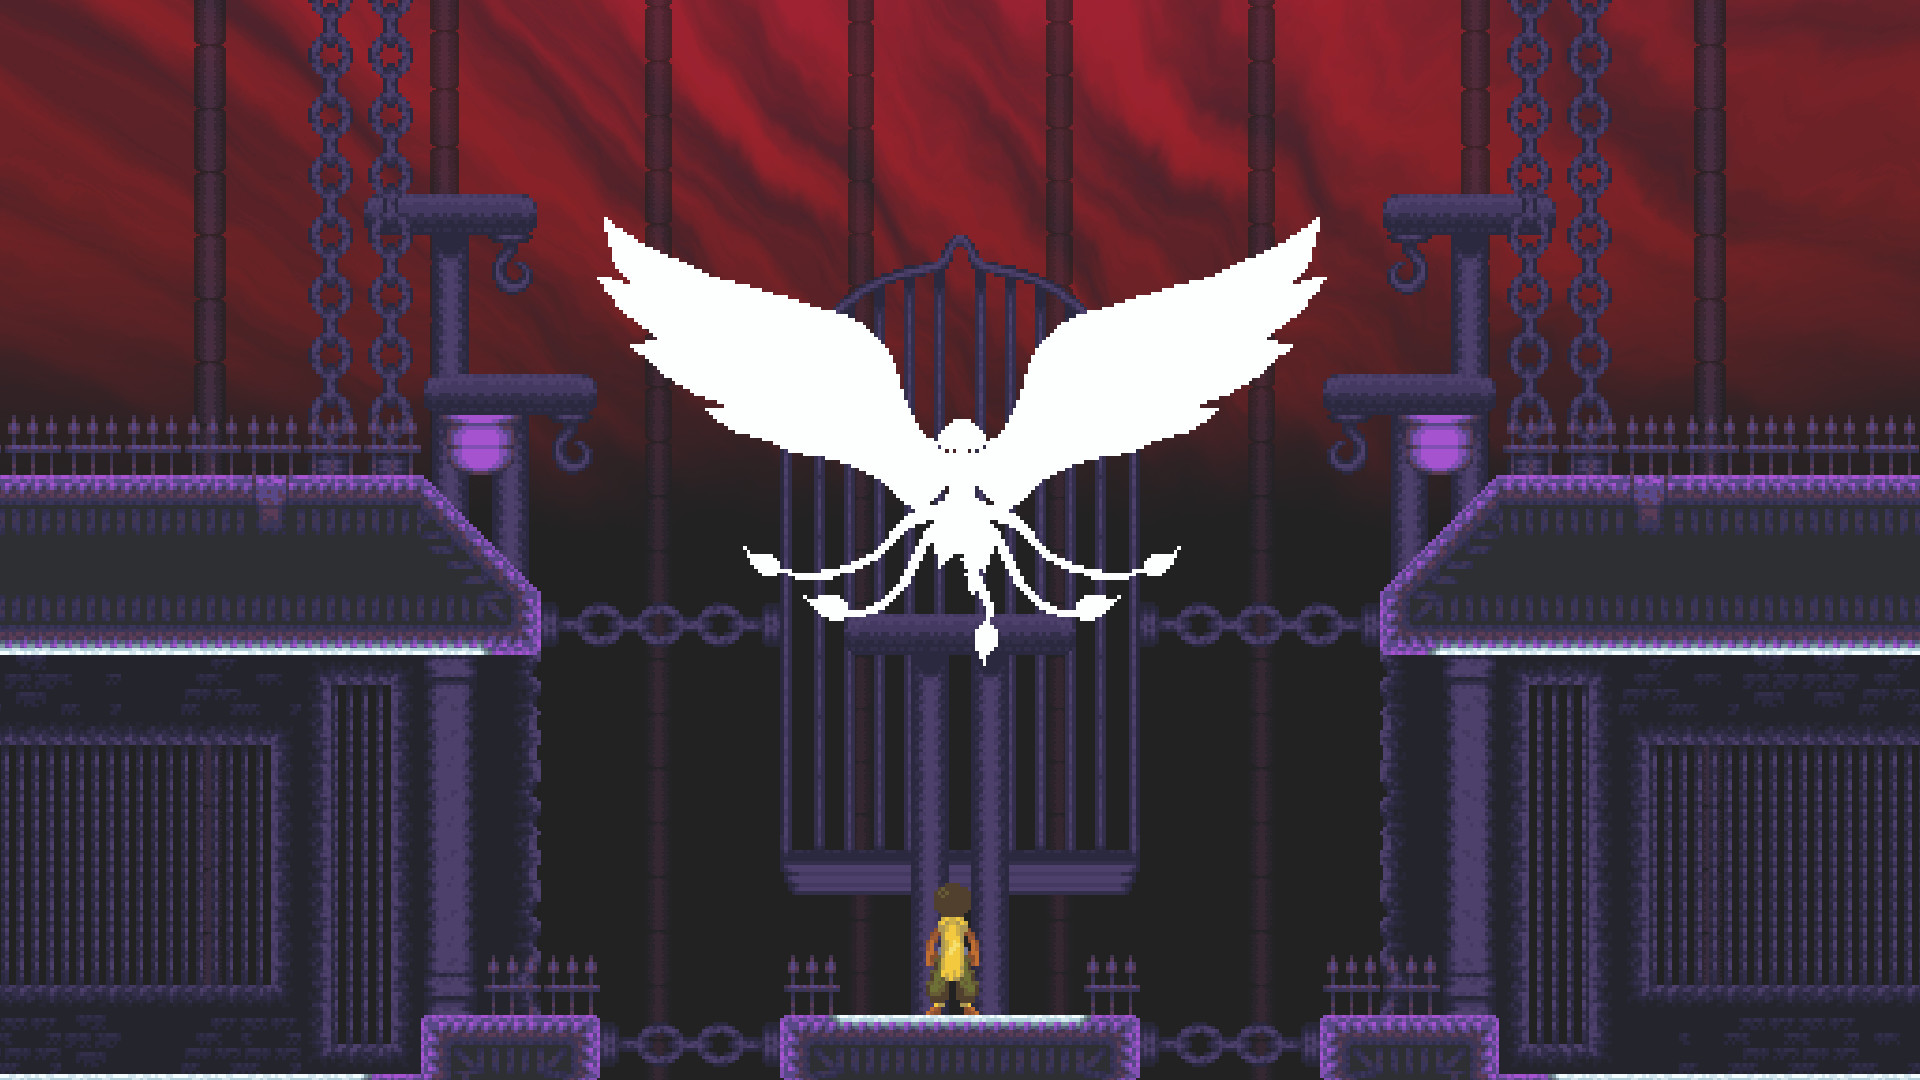 Next week's free game from Epic is a gravity-defying Metroidvania